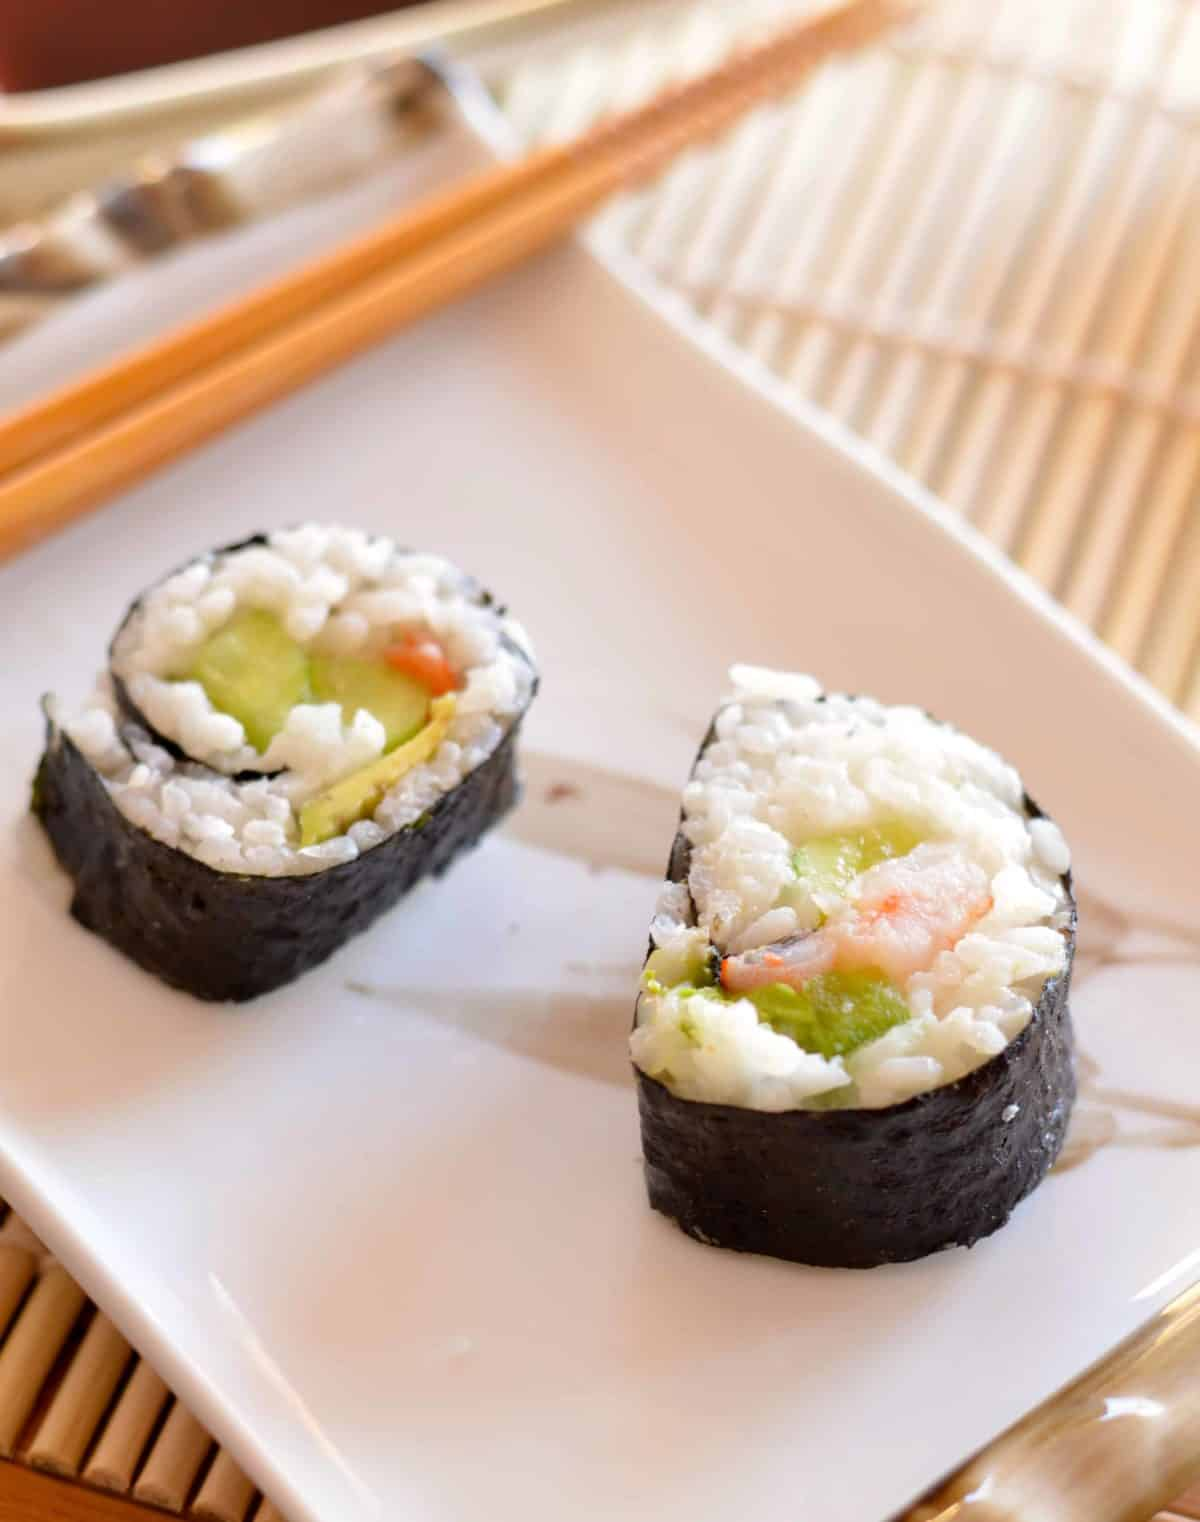 How to Make a Sushi Roll at Home